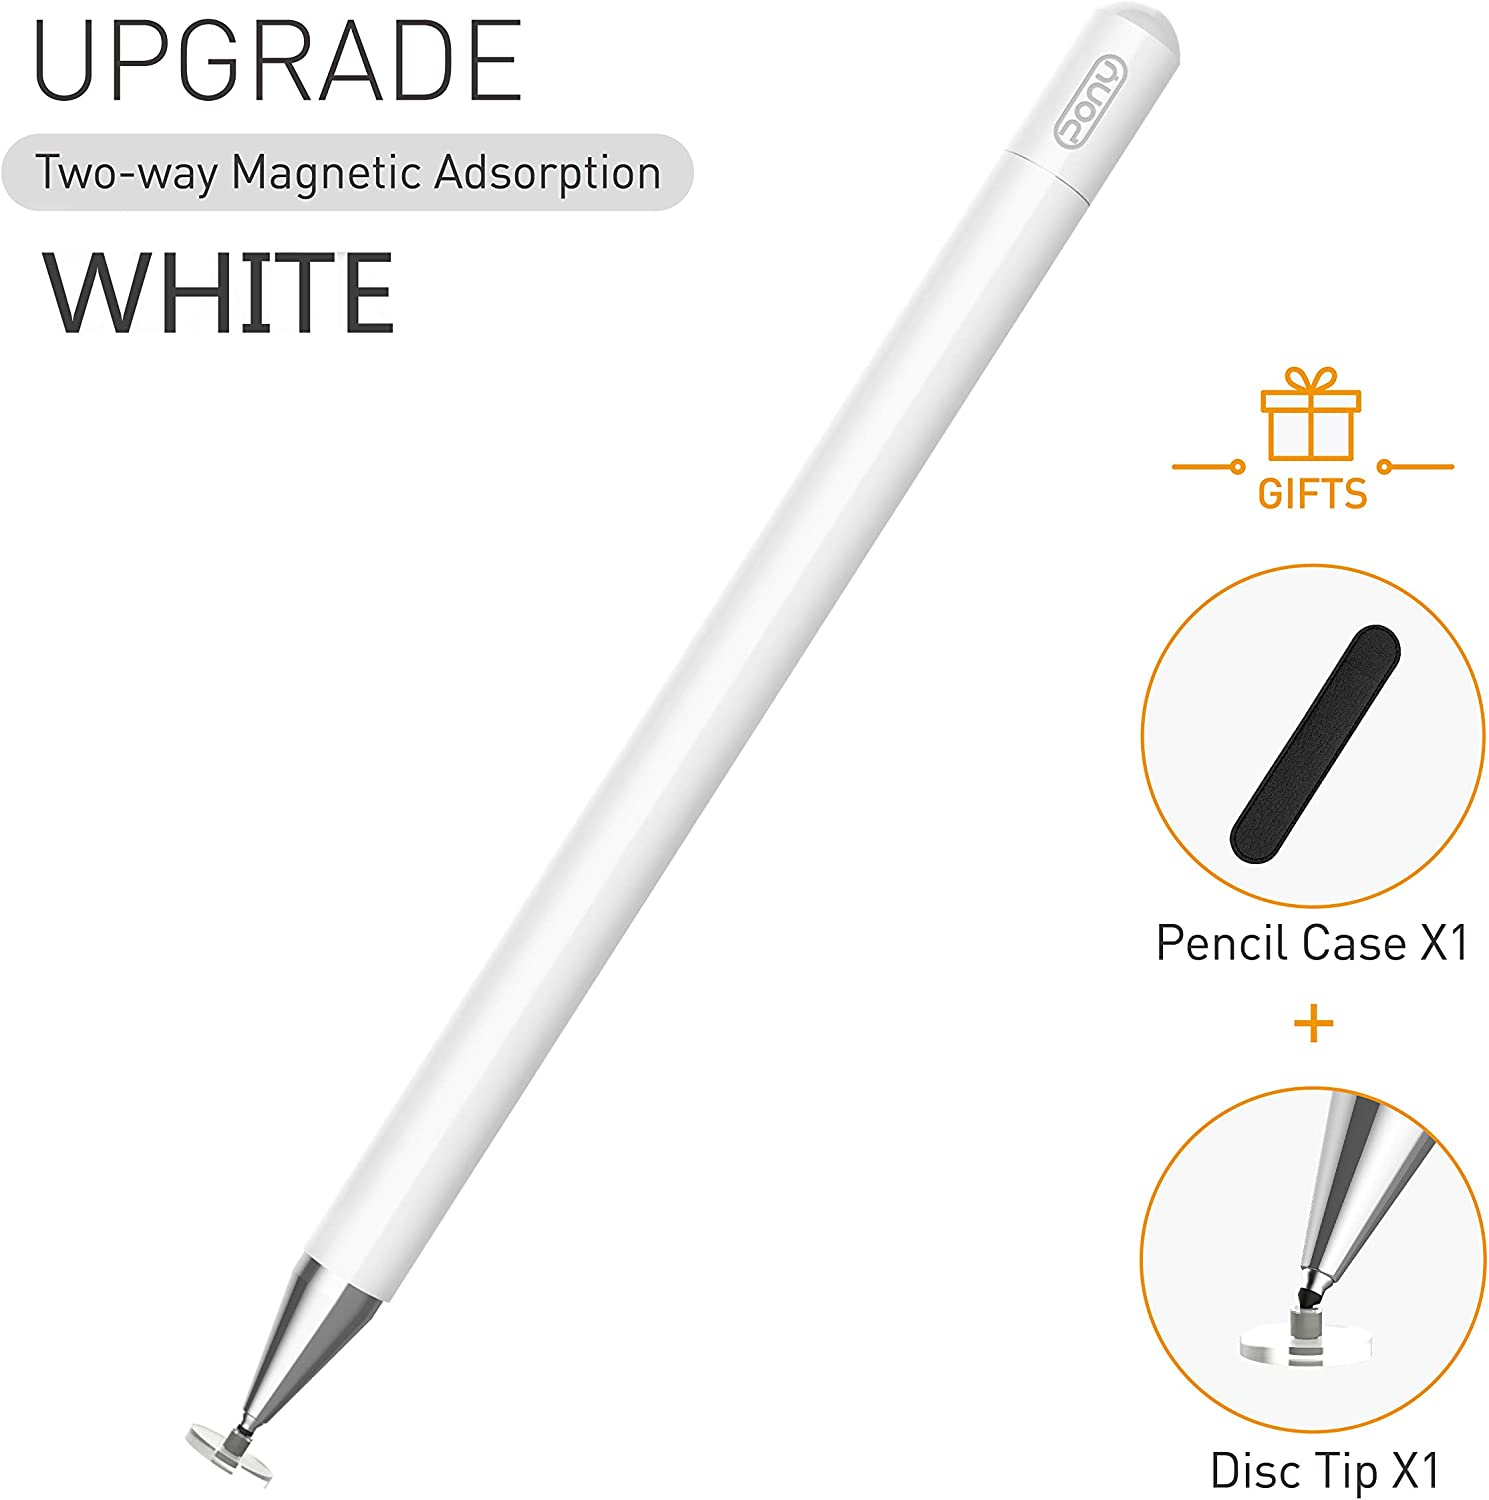 Stylus pens for ipad Pencil, PONY Capacitive Pen High Sensitivity & Fine Point, Magnetism Cover Cap, Universal for Apple/iPhone/Ipad pro/Mini/Air/Android/Microsoft/Surface and Other Touch Screens.